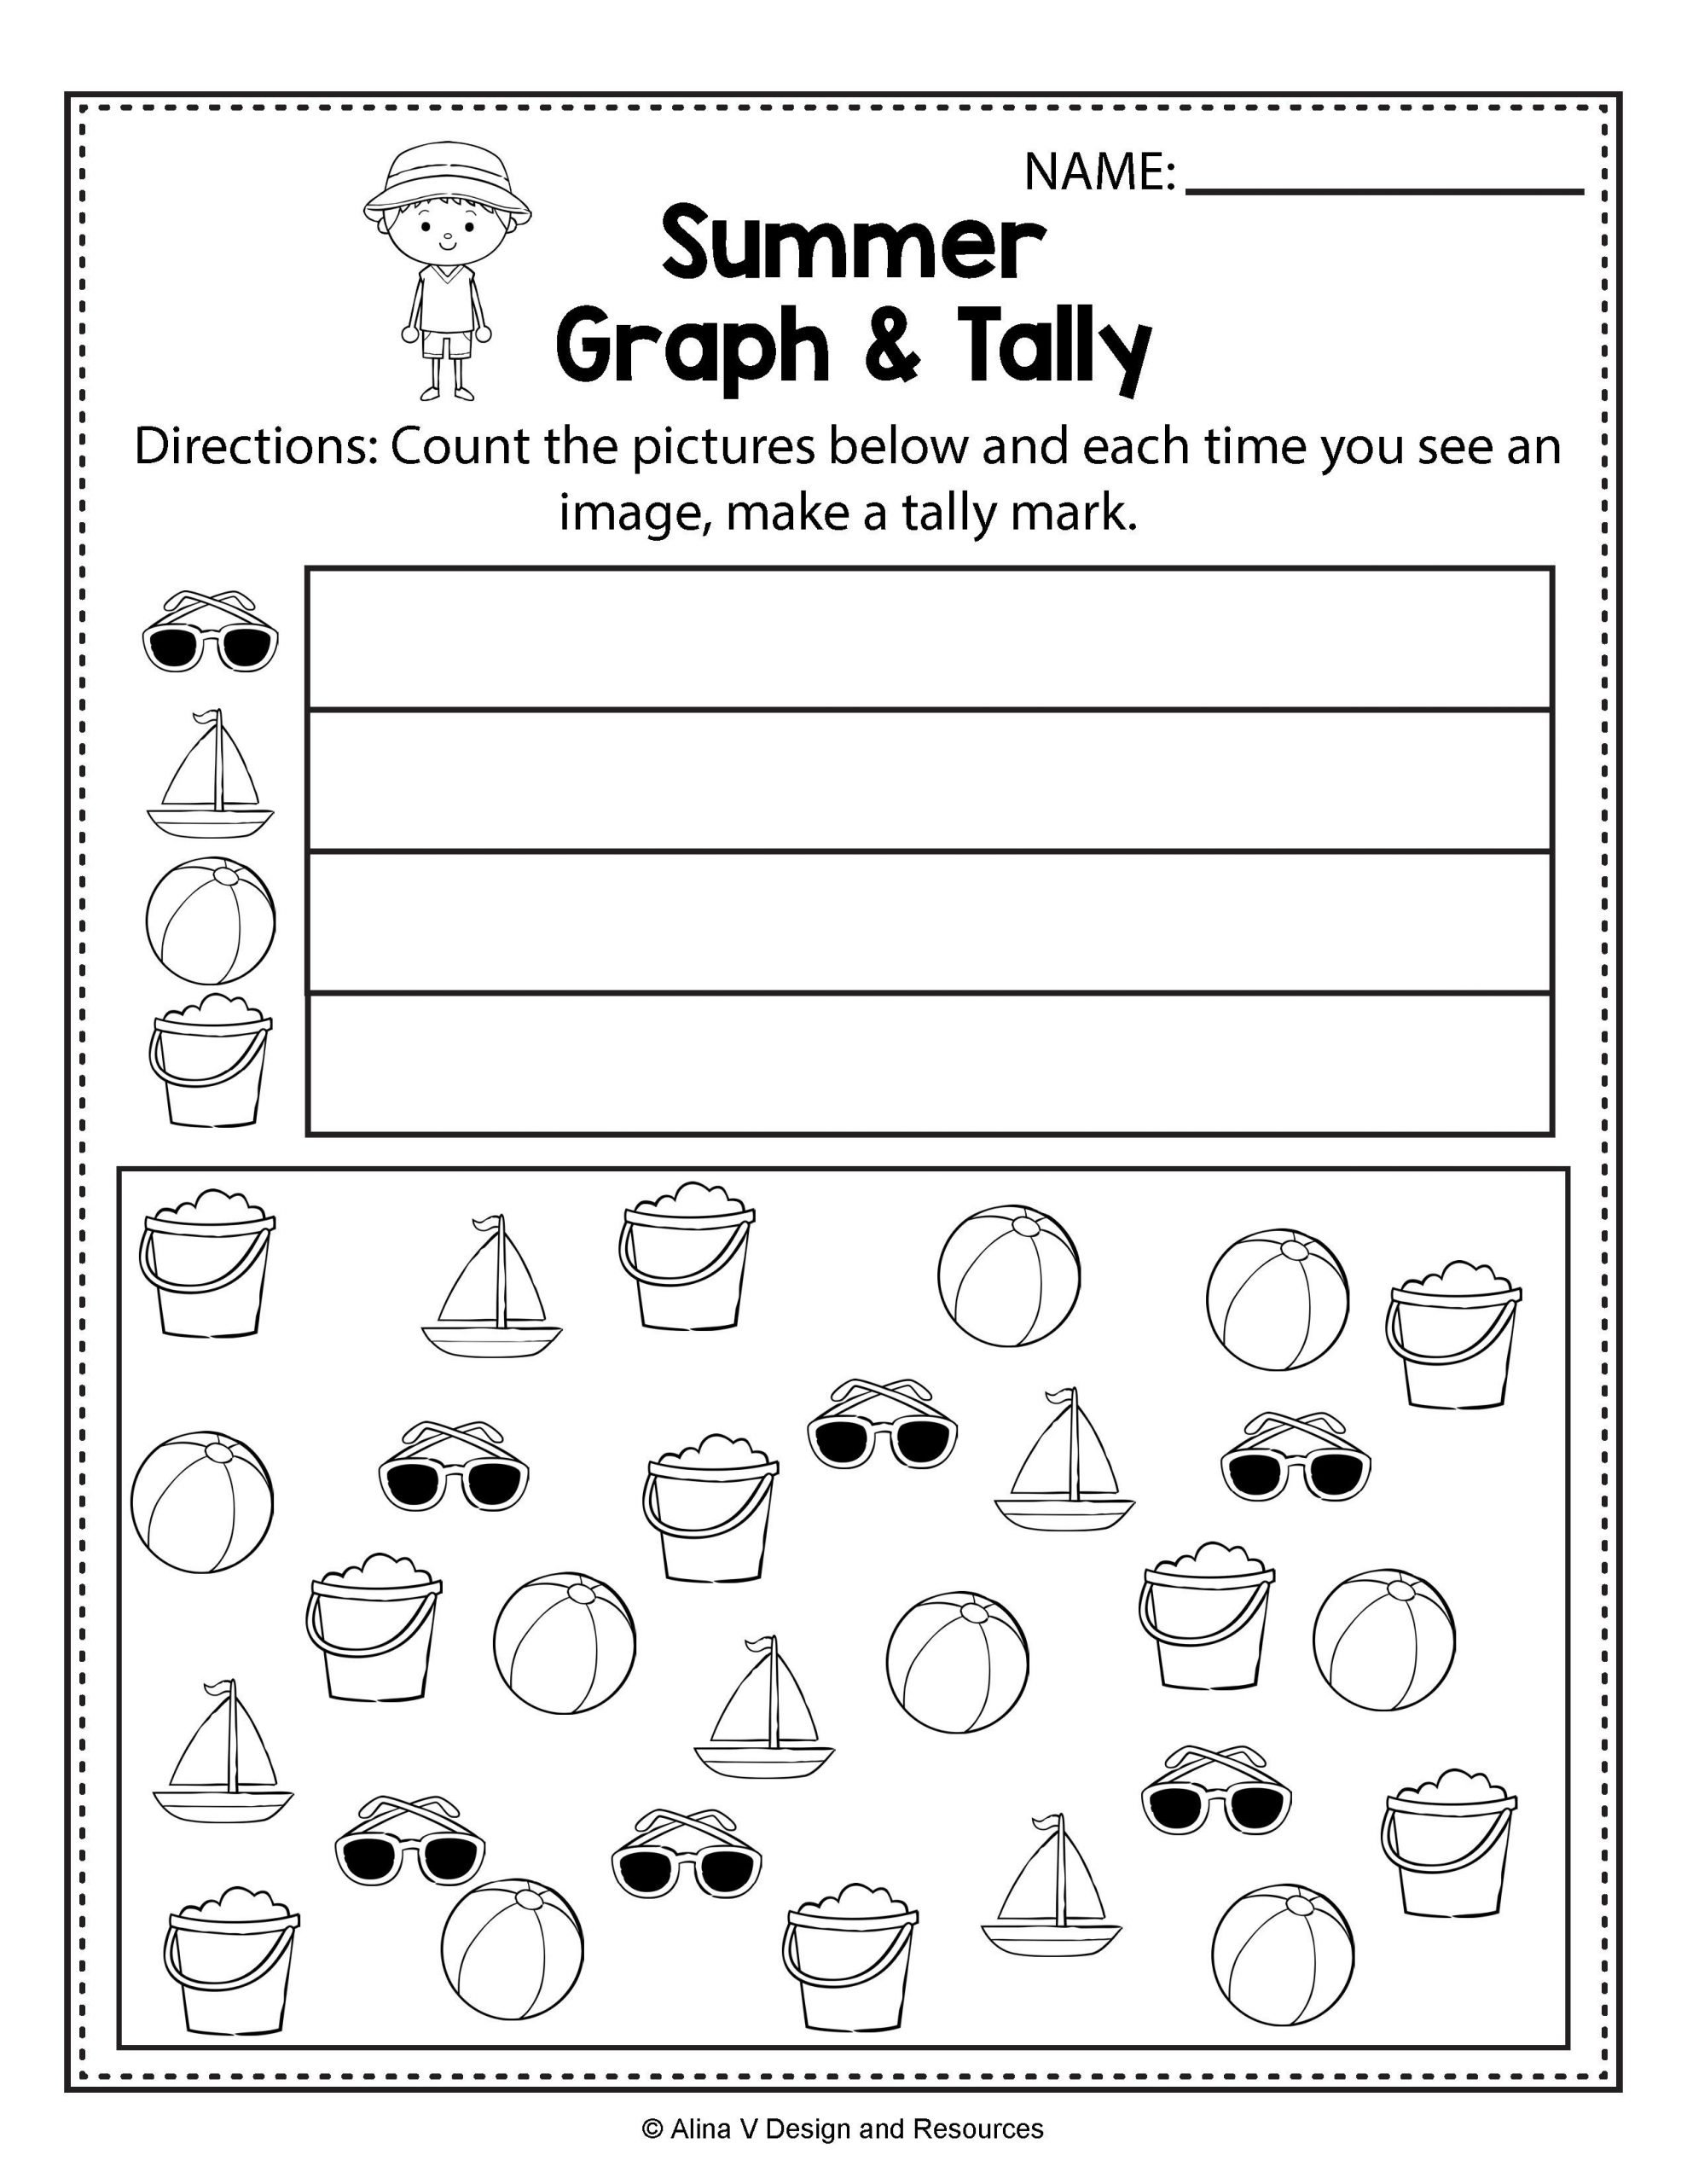 Tally Marks Worksheets for Kindergarten Summer Graph and Tally Summer Math Worksheets and